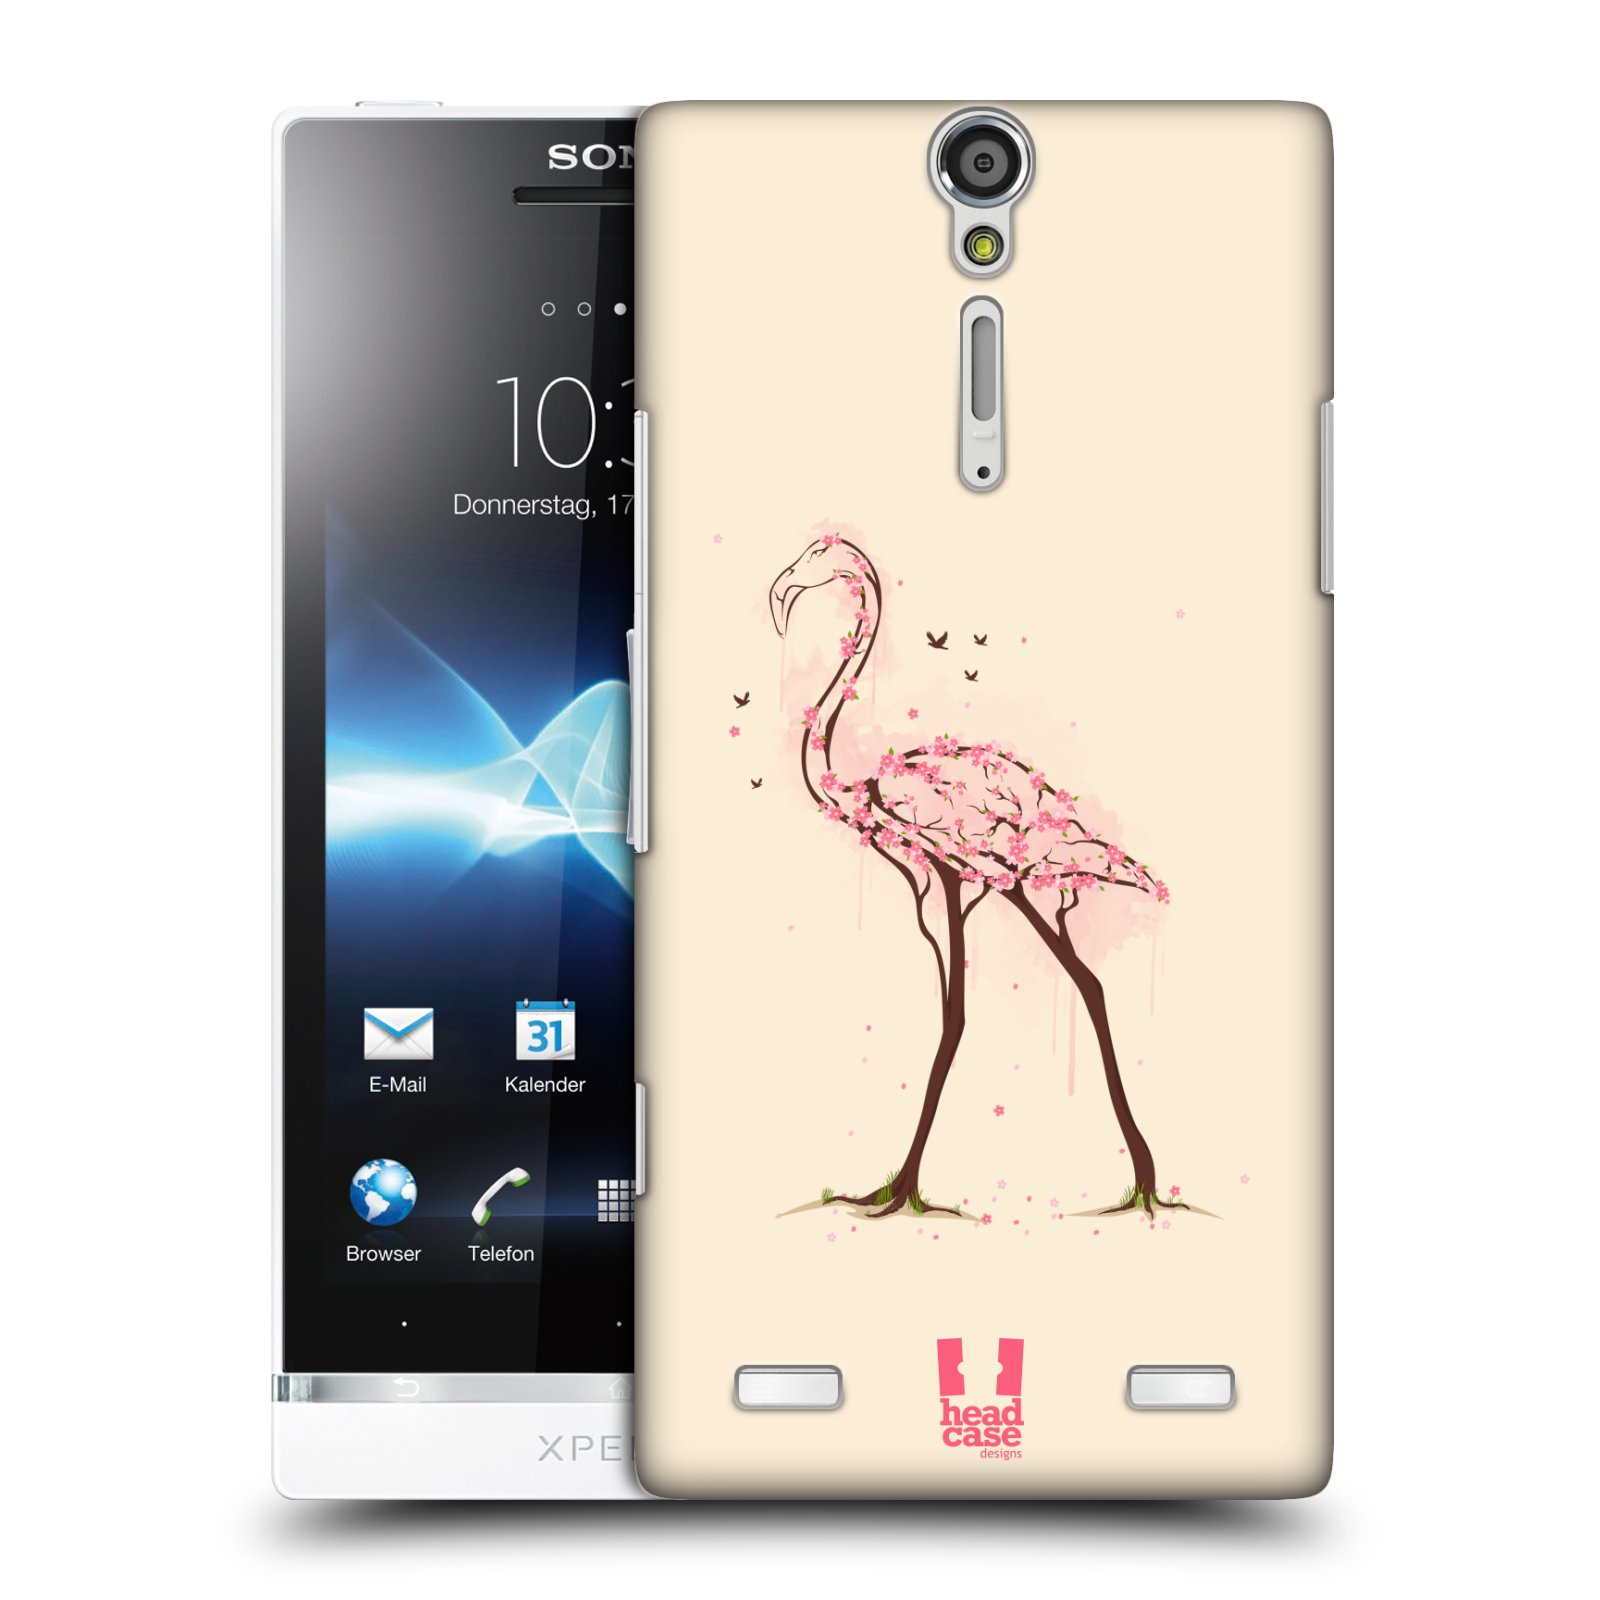 HEAD CASE DESIGNS WILDLIFE IN BLOOM HARD BACK CASE FOR SONY XPERIA S LT26i